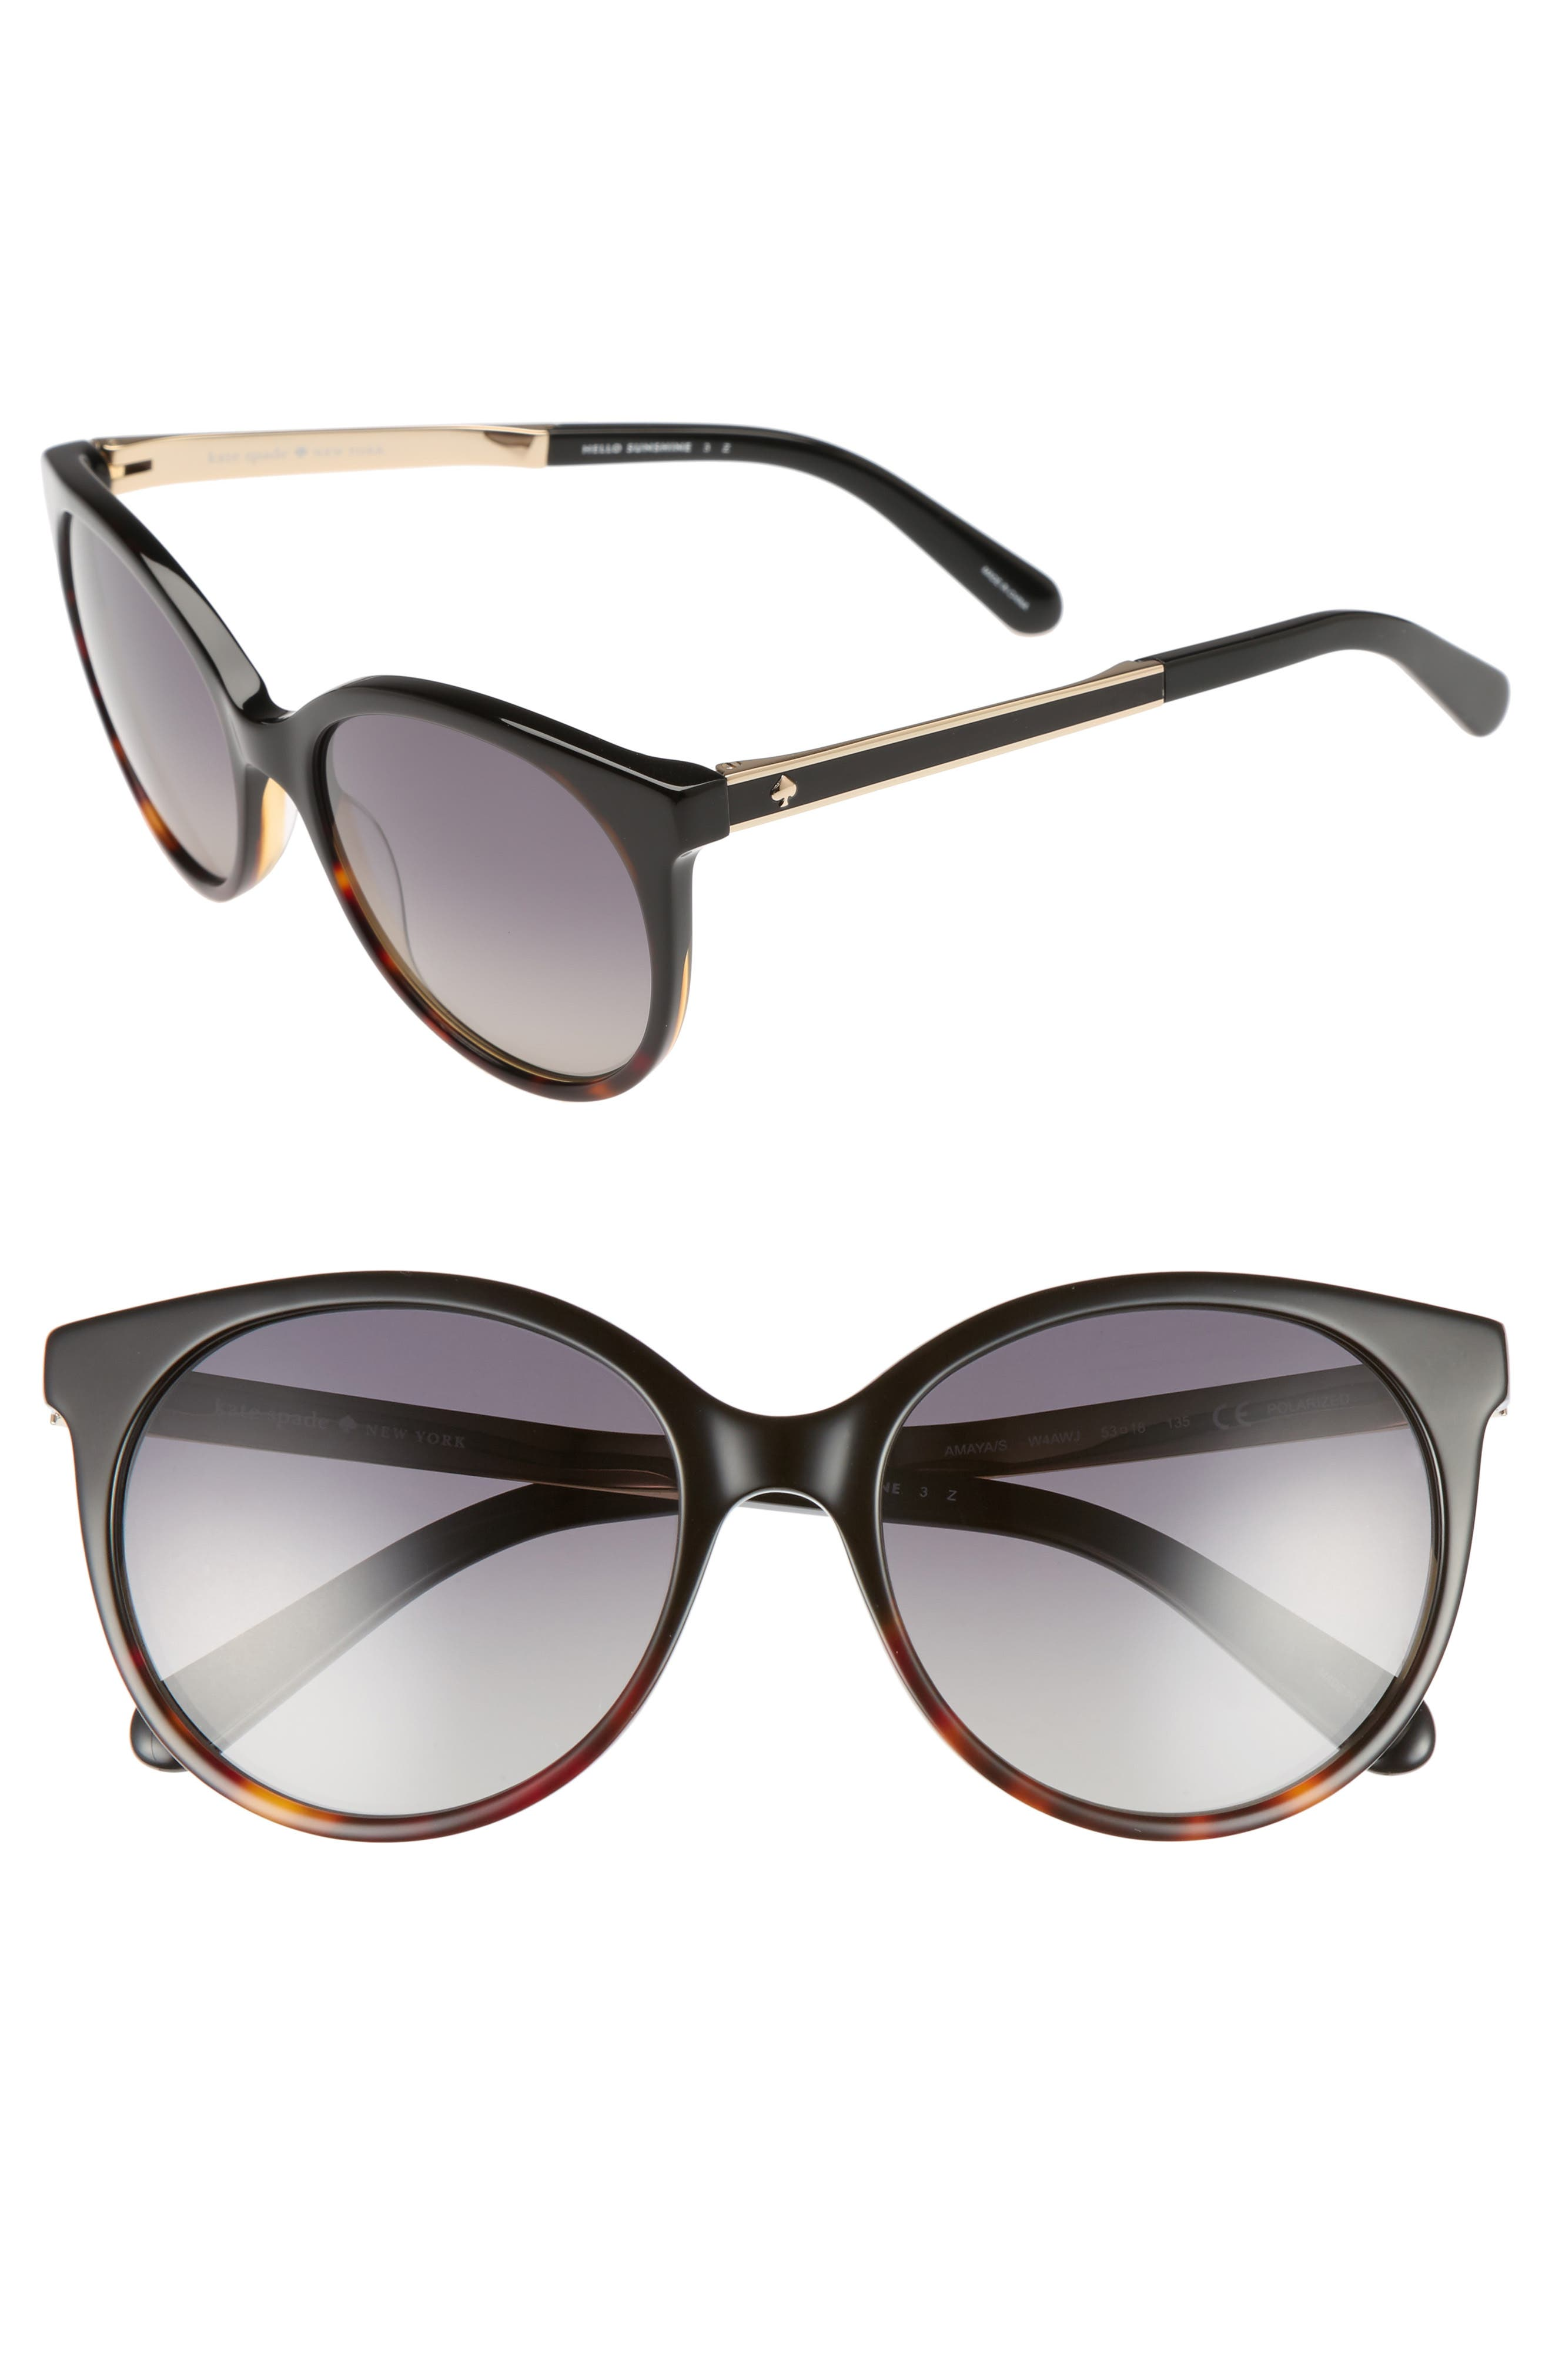 Alternate Image 1 Selected - kate spade new york 'amayas' 53mm cat eye sunglasses